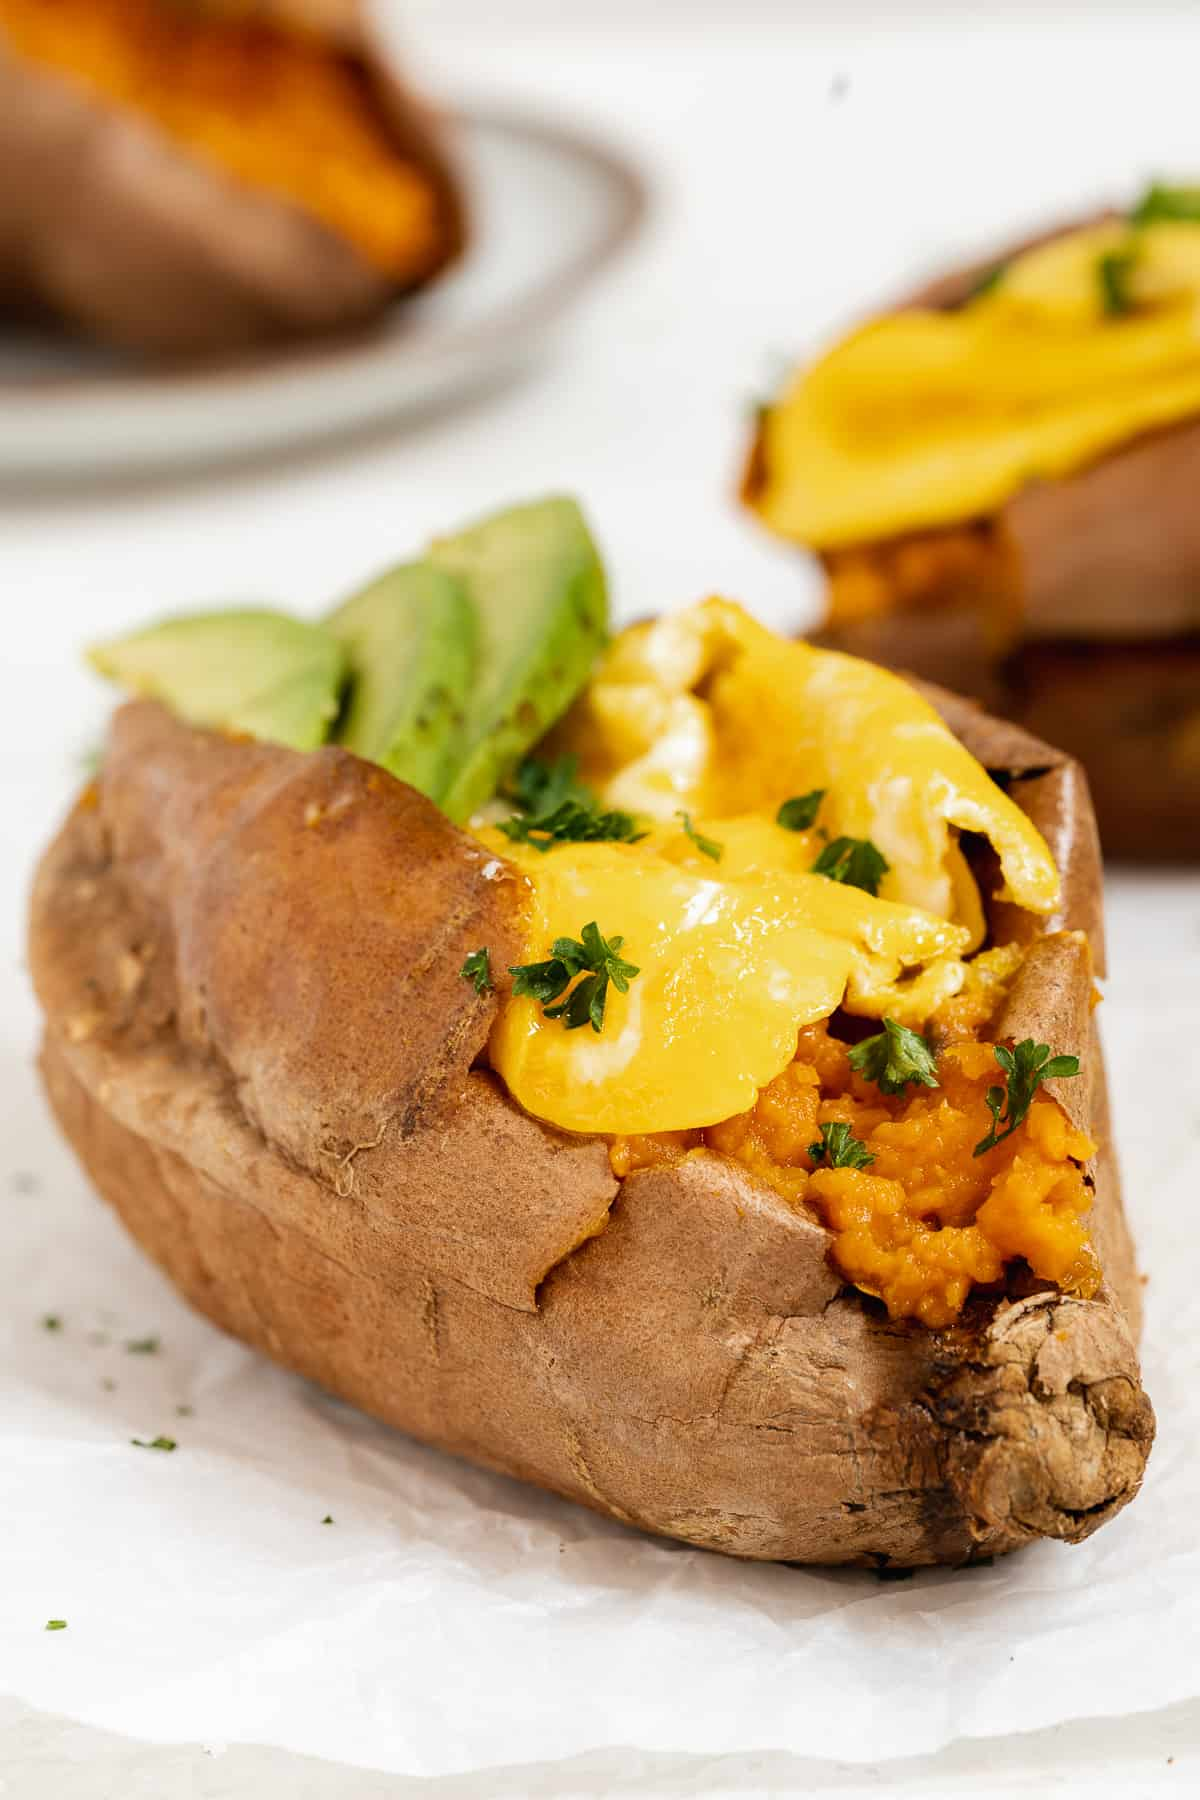 Sweet potato stuffed with a scrambled egg with green herbs and avocado on a white surface.